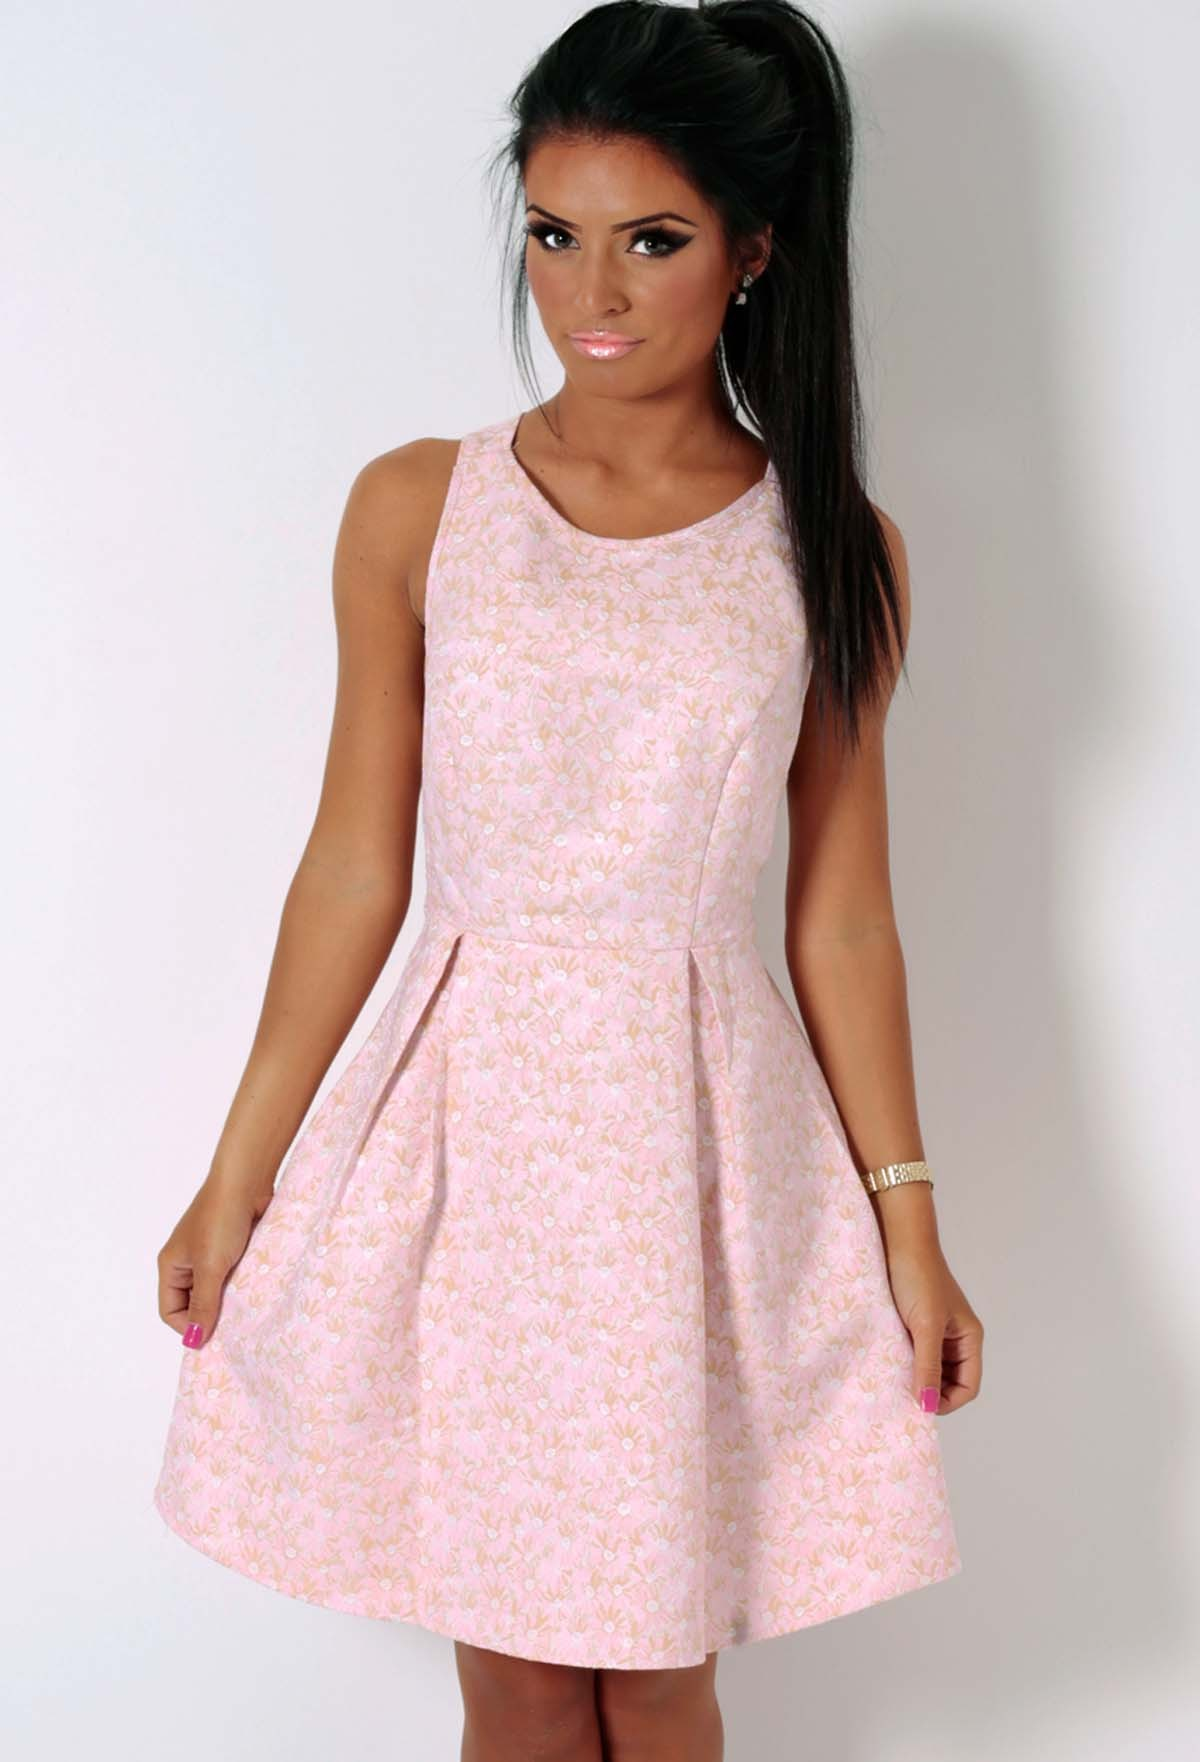 Jitterbug Pink and Gold Textured Floral Skater Dress | Pink Boutique